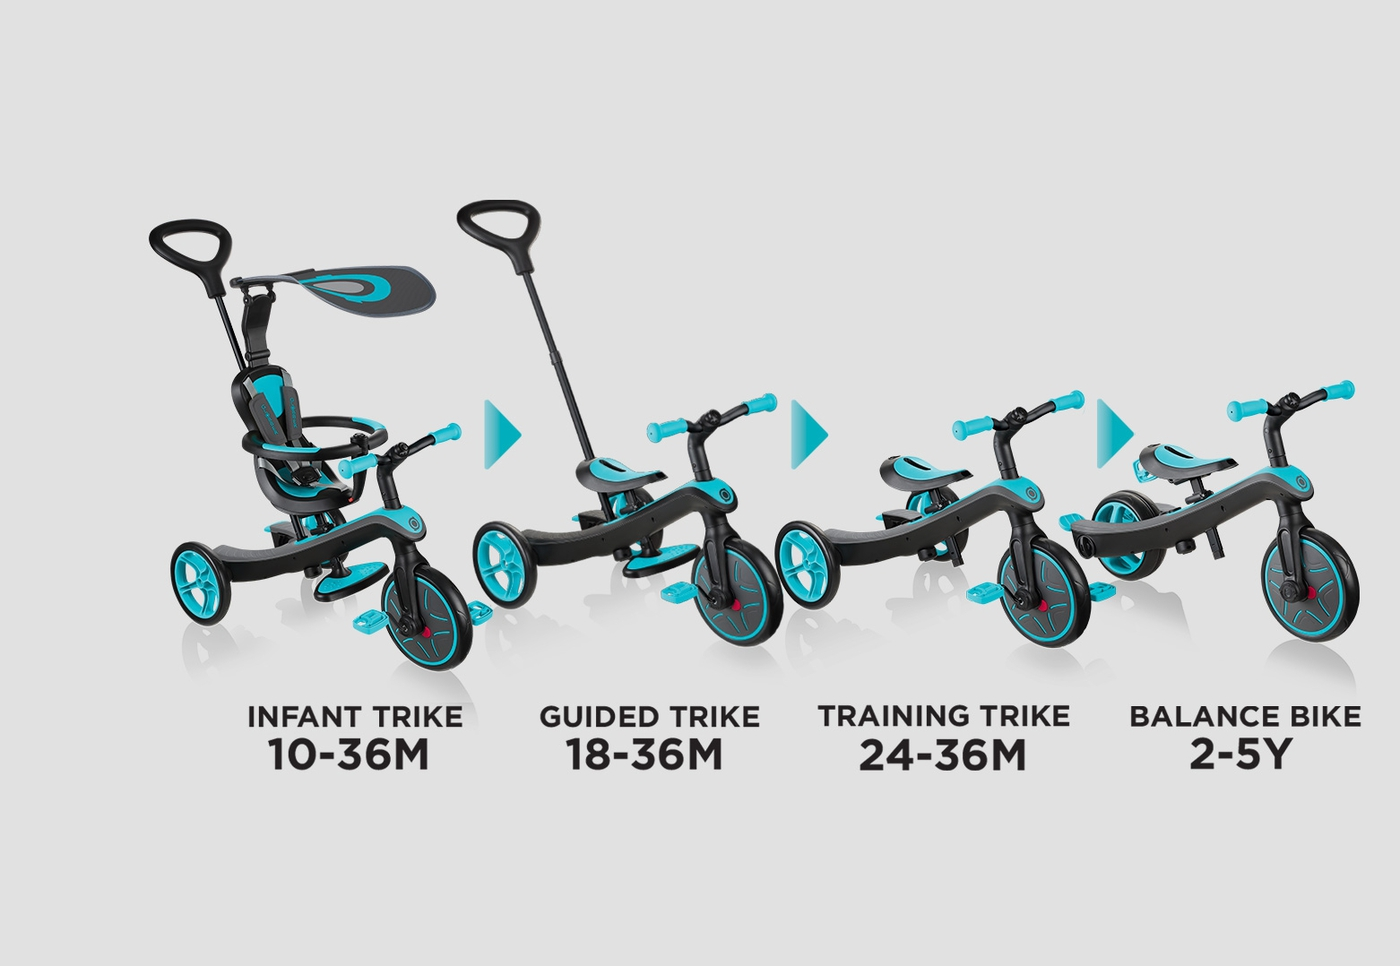 EXPLORER-TRIKE-4in1-baby-tricycle-infant-trike-guided-trike-training-bike-balance-bike